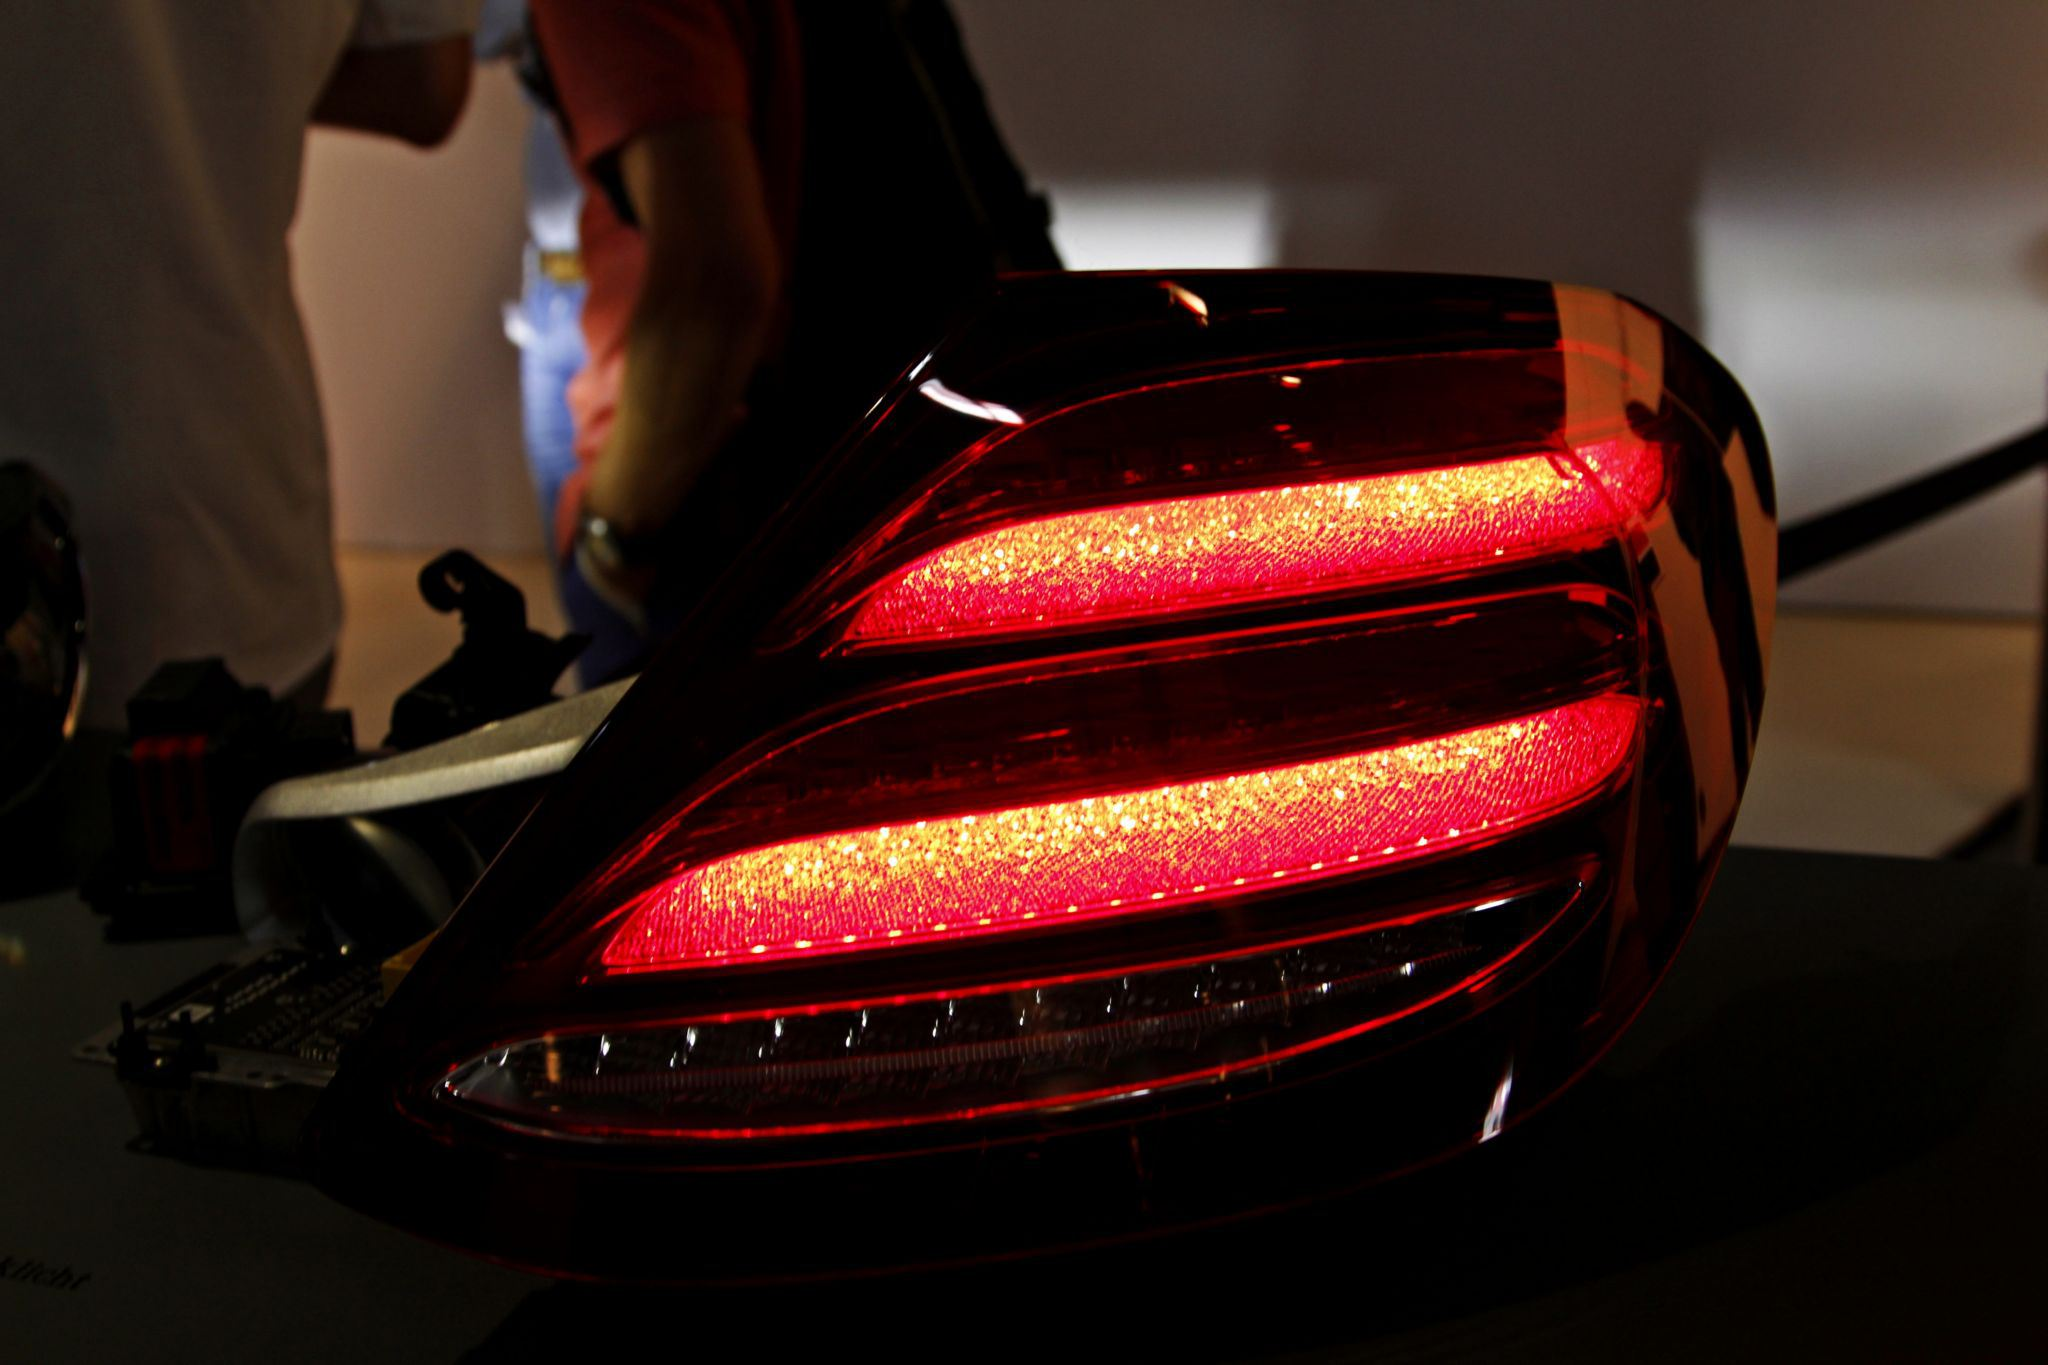 2016 w213 mercedes e class taillights revealed allegedly for Mercedes benz lighting